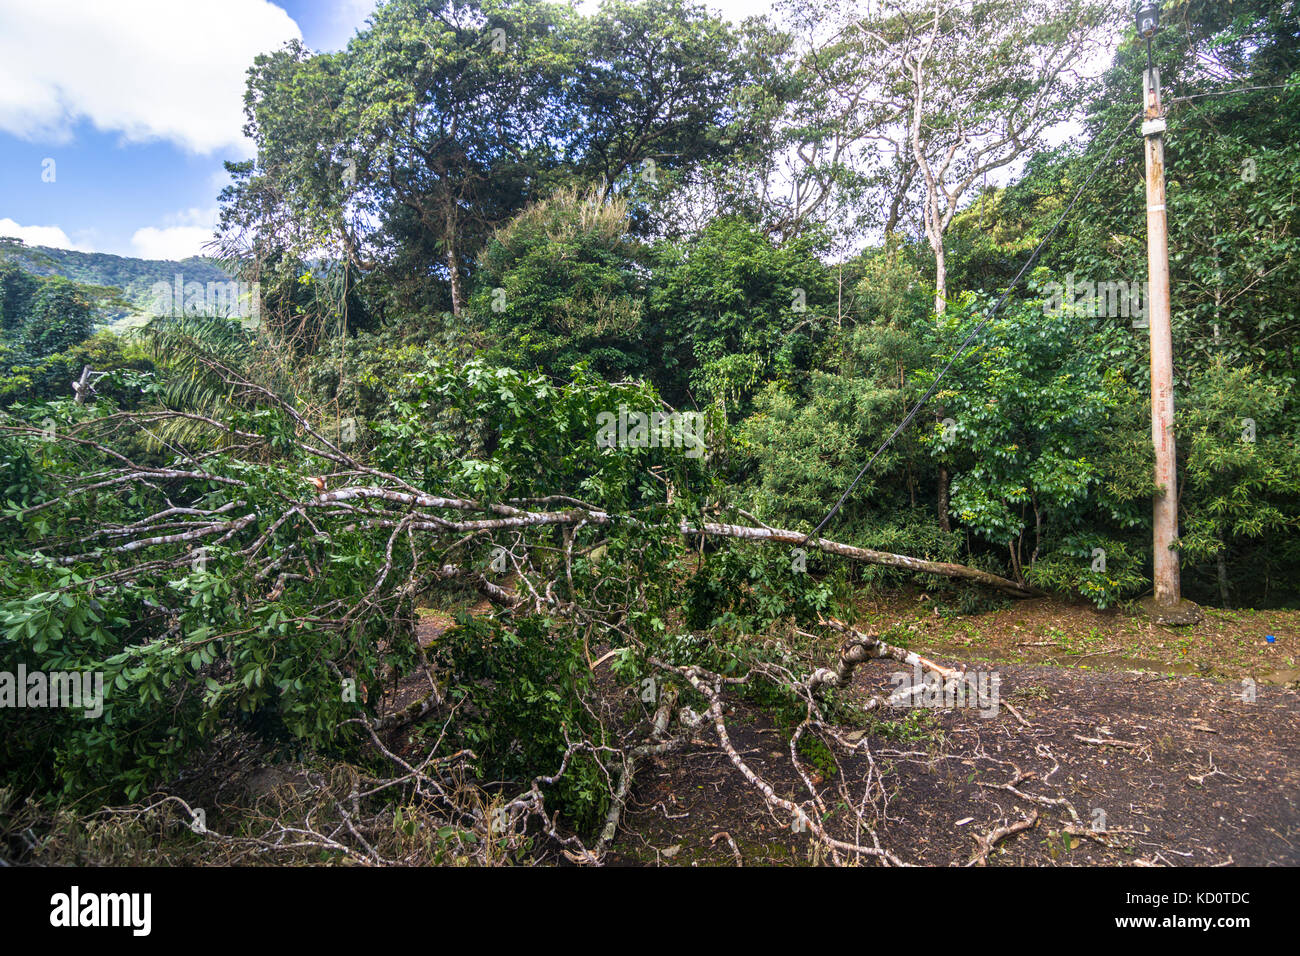 Trees and electric power lines down after strong tropical storm force damaging winds near El Valle de Anton, Panama. - Stock Image